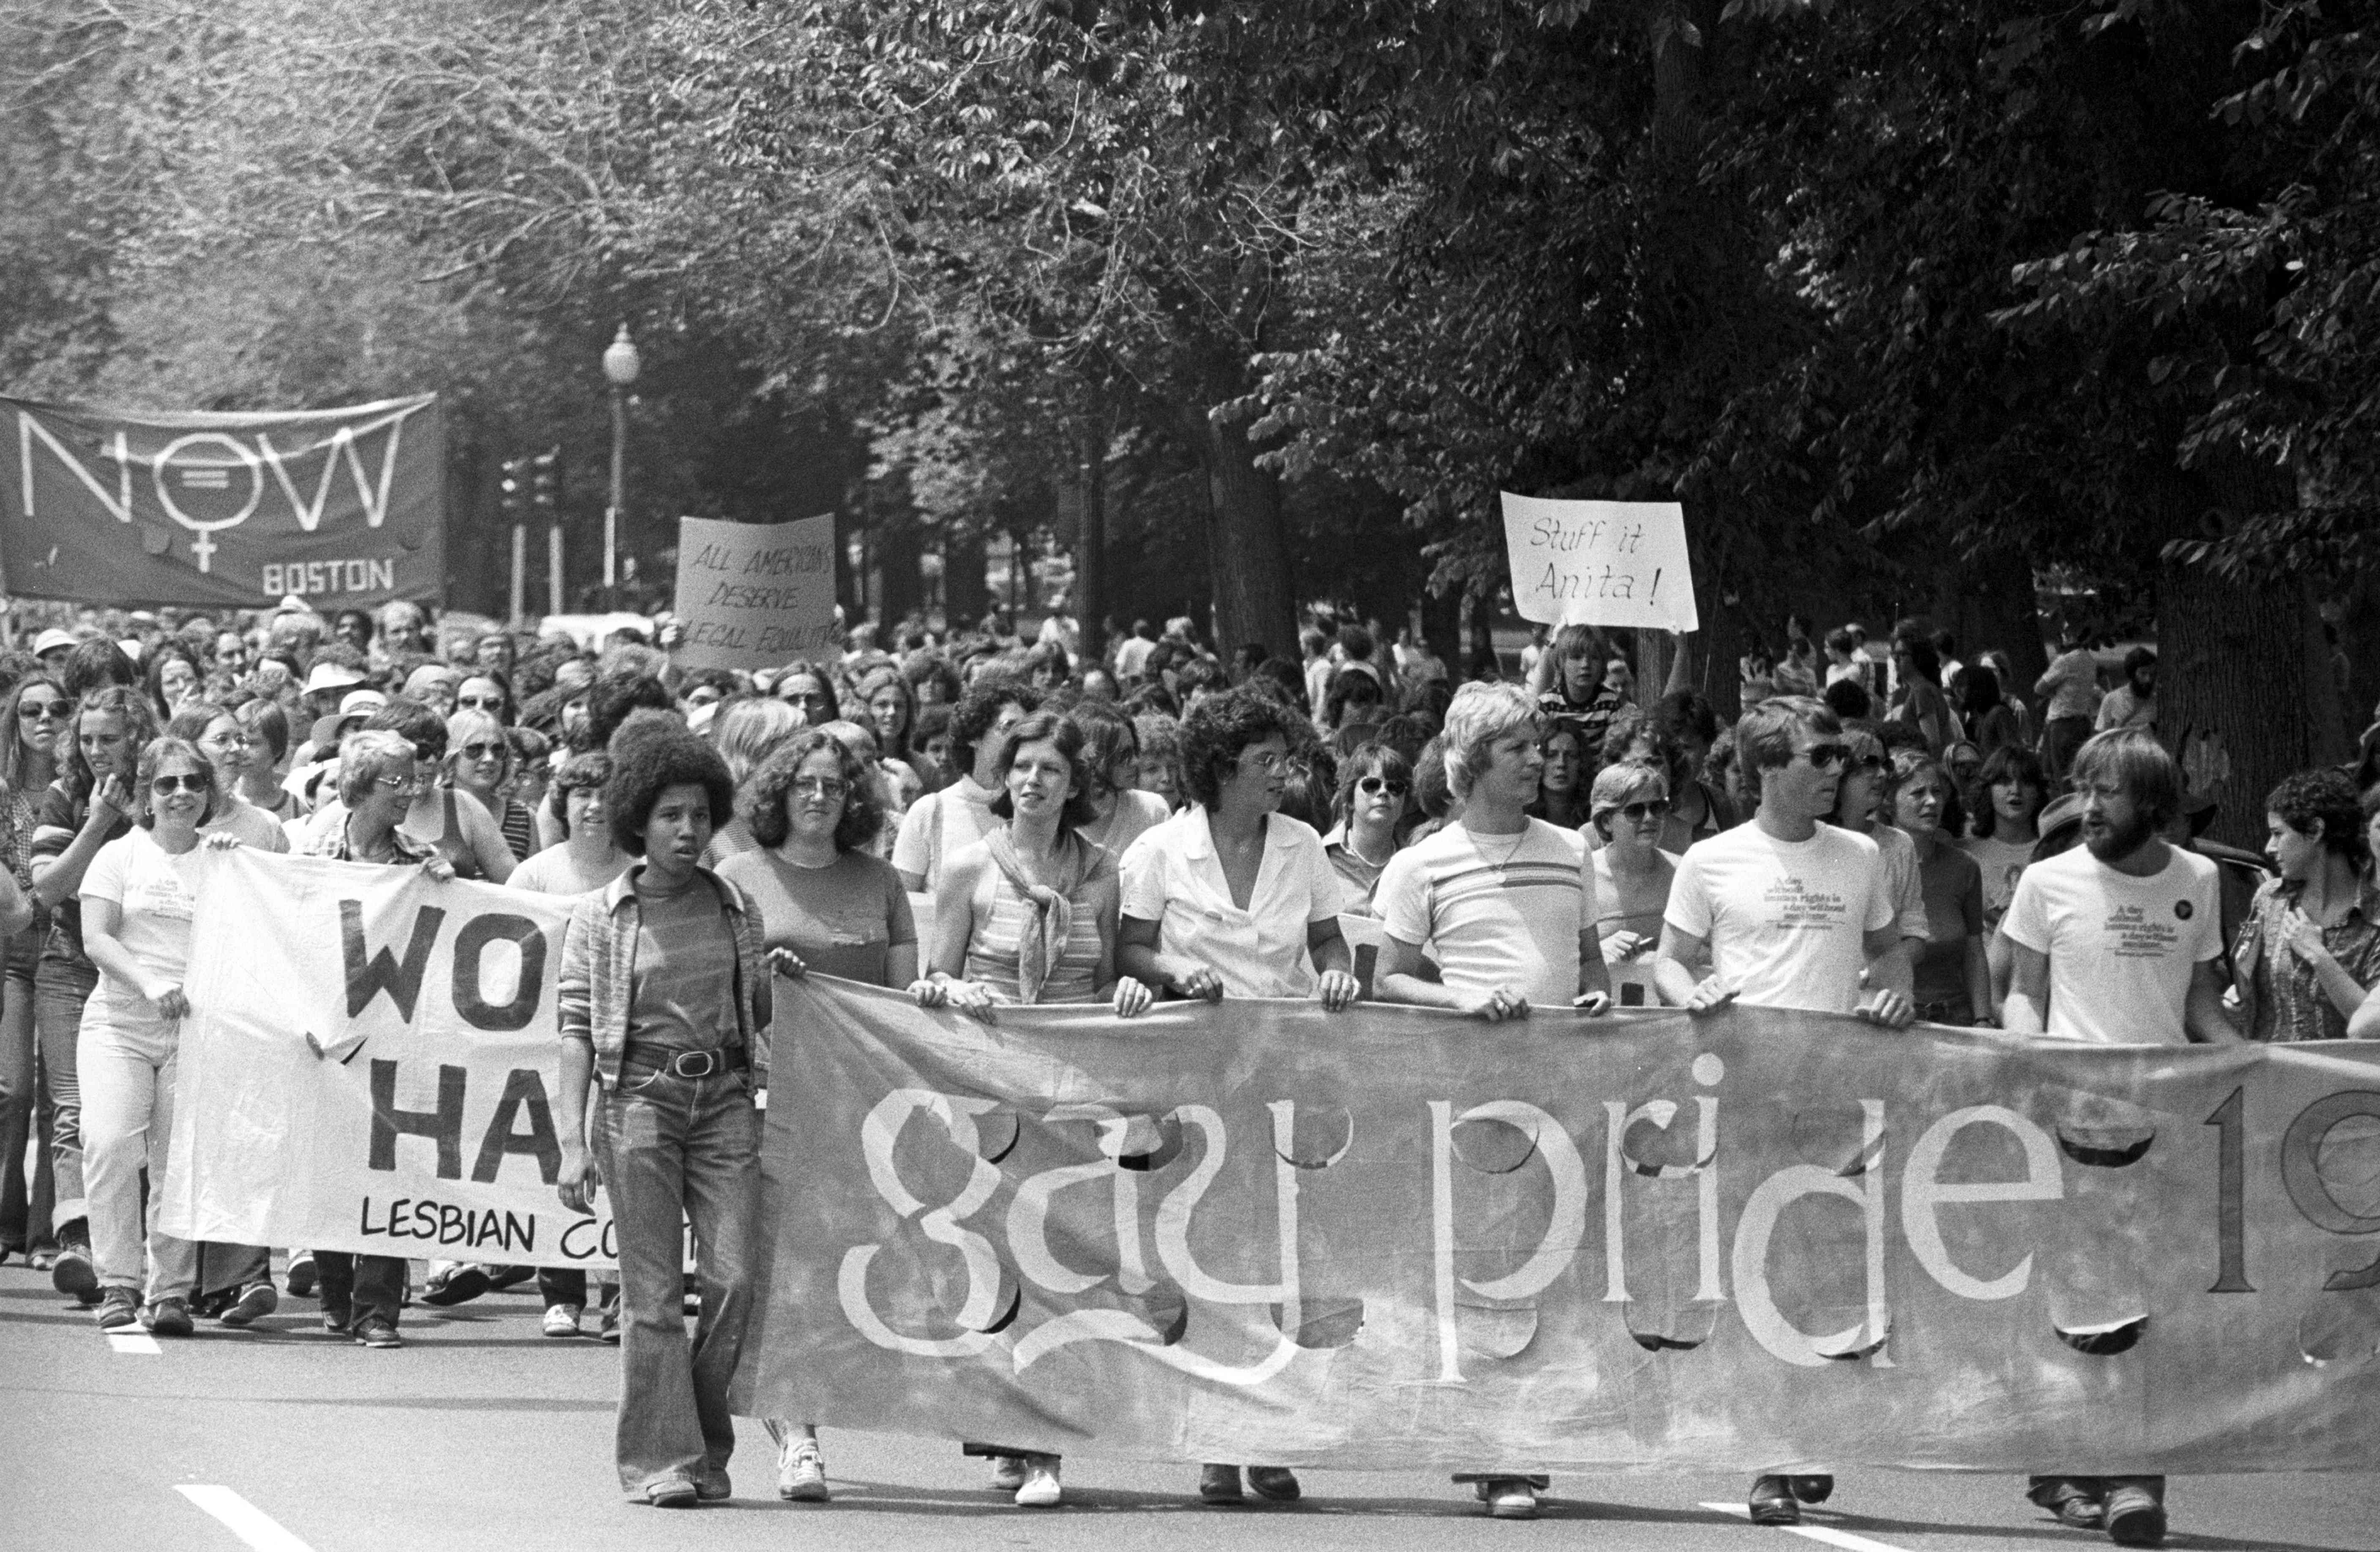 Gay and lesbian pride parade in the Back Bay neighborhood of Boston, 1970.